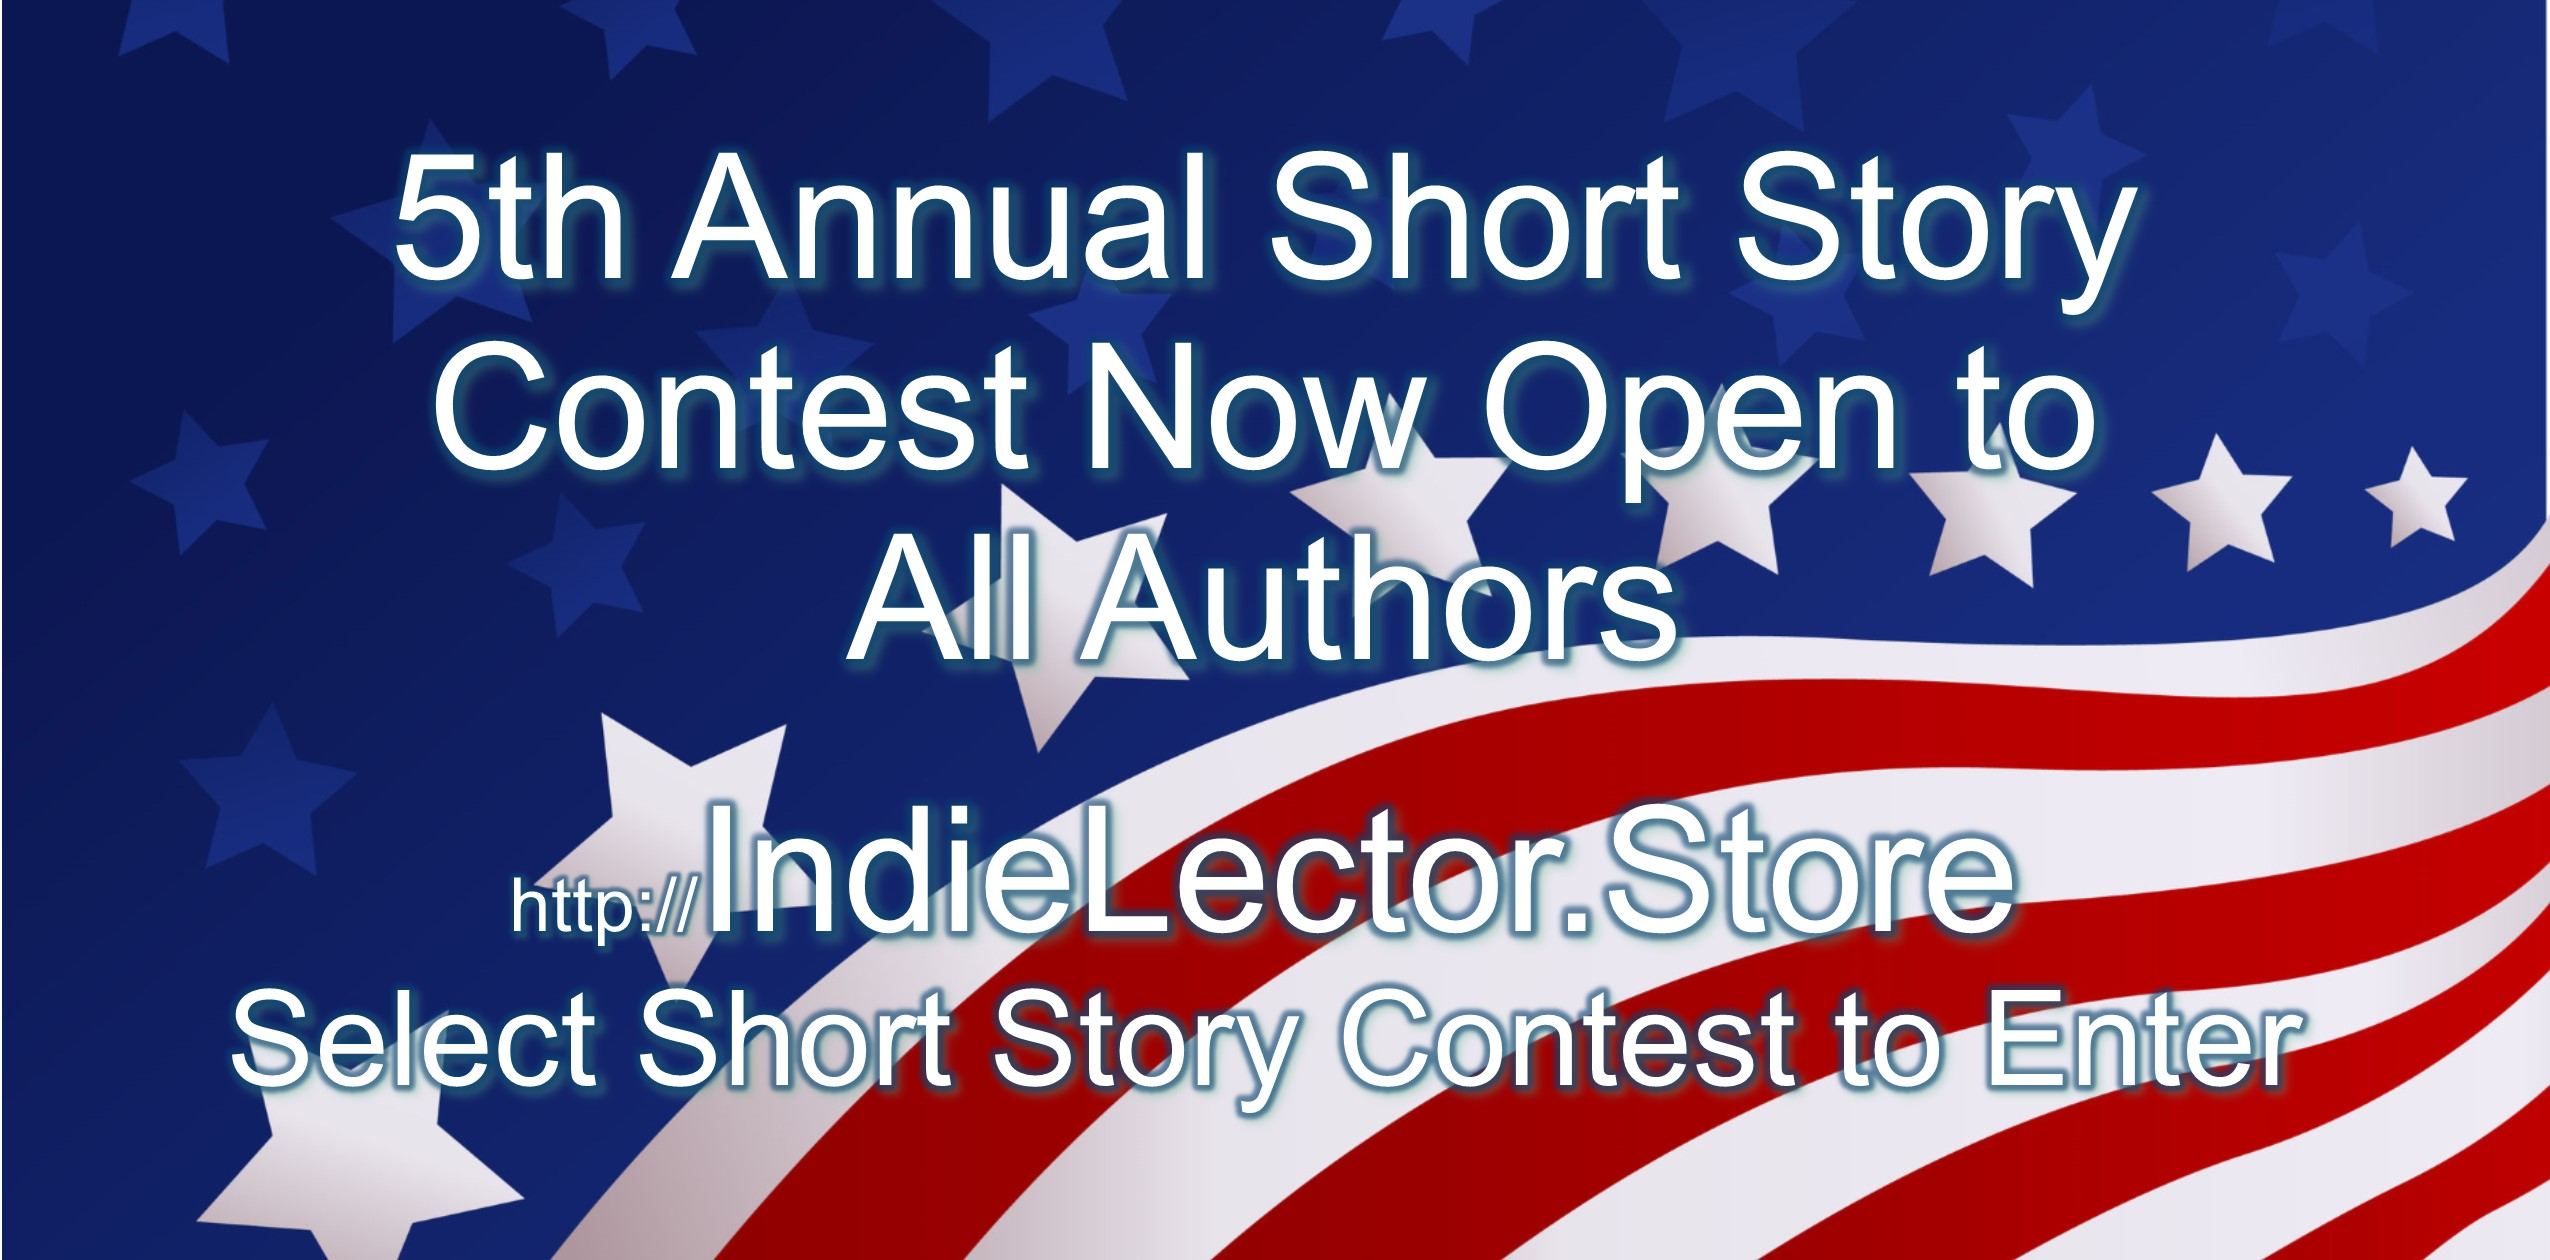 5th Annual Short Story Contest